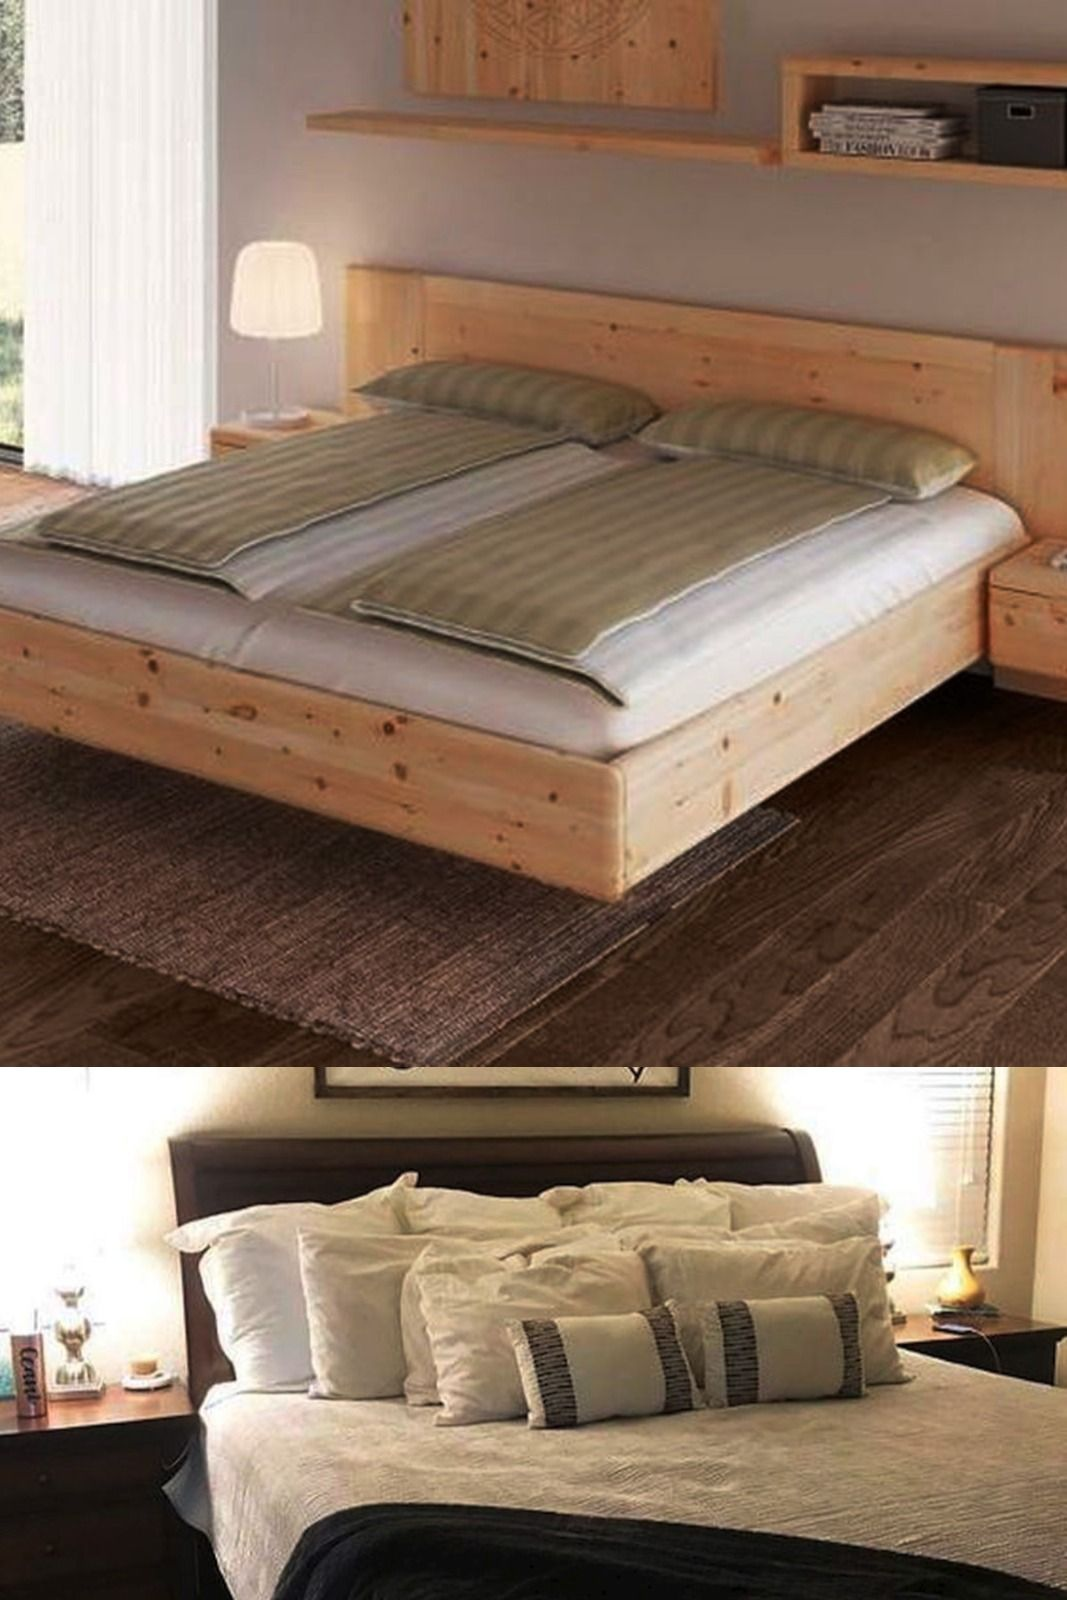 Best Bed Frame For Sexually Active Couple In 2020 With Images